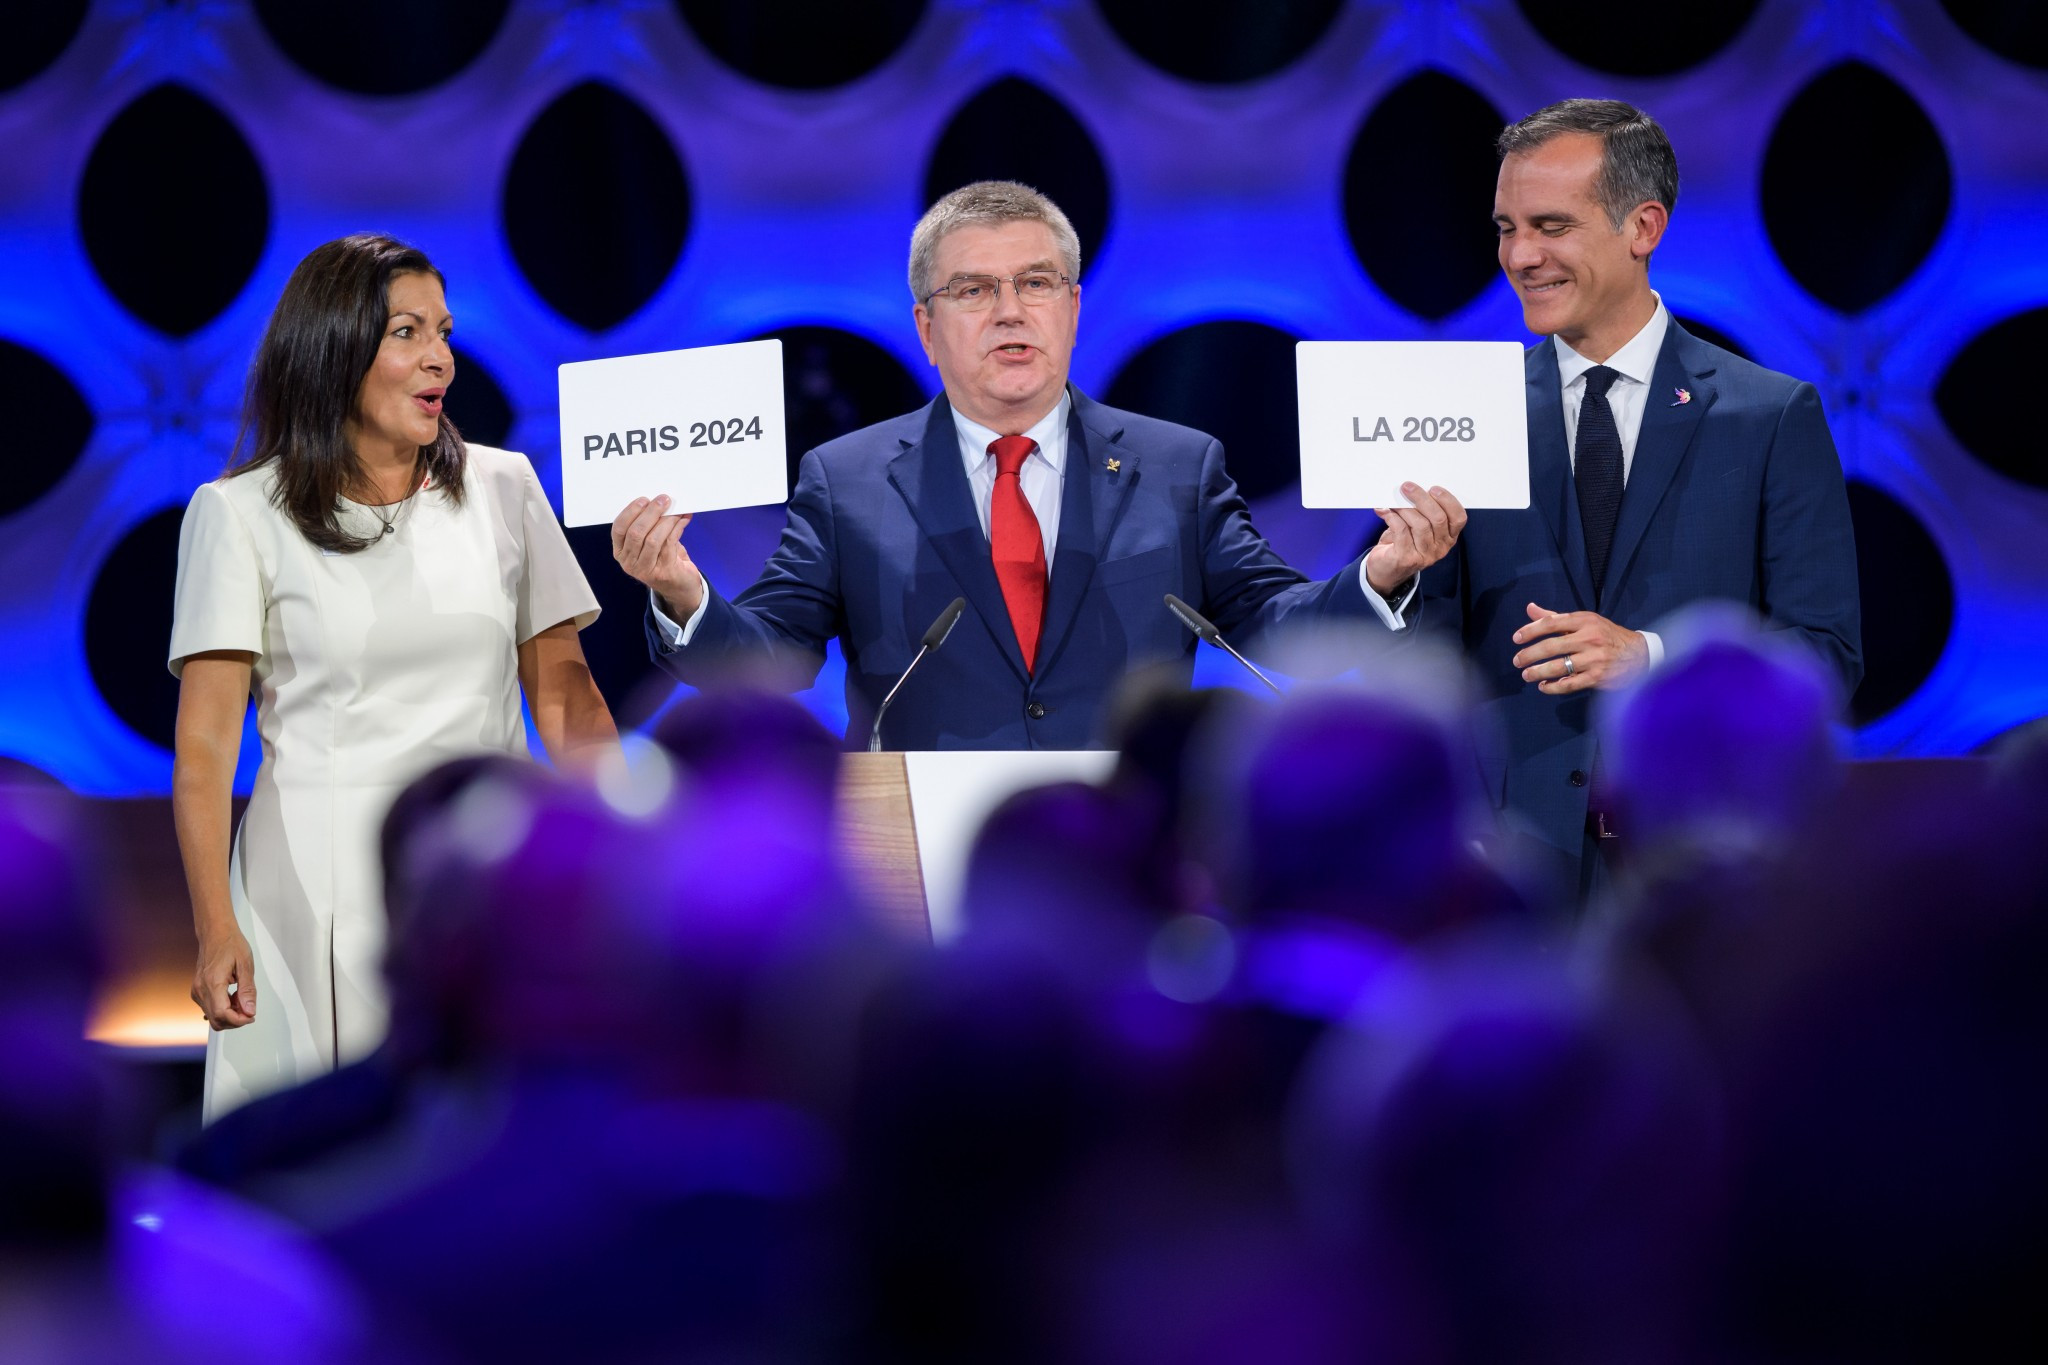 IOC President Thomas Bach said the decision would provide extraordinary benefits to the Olympic Movement ©Getty Images